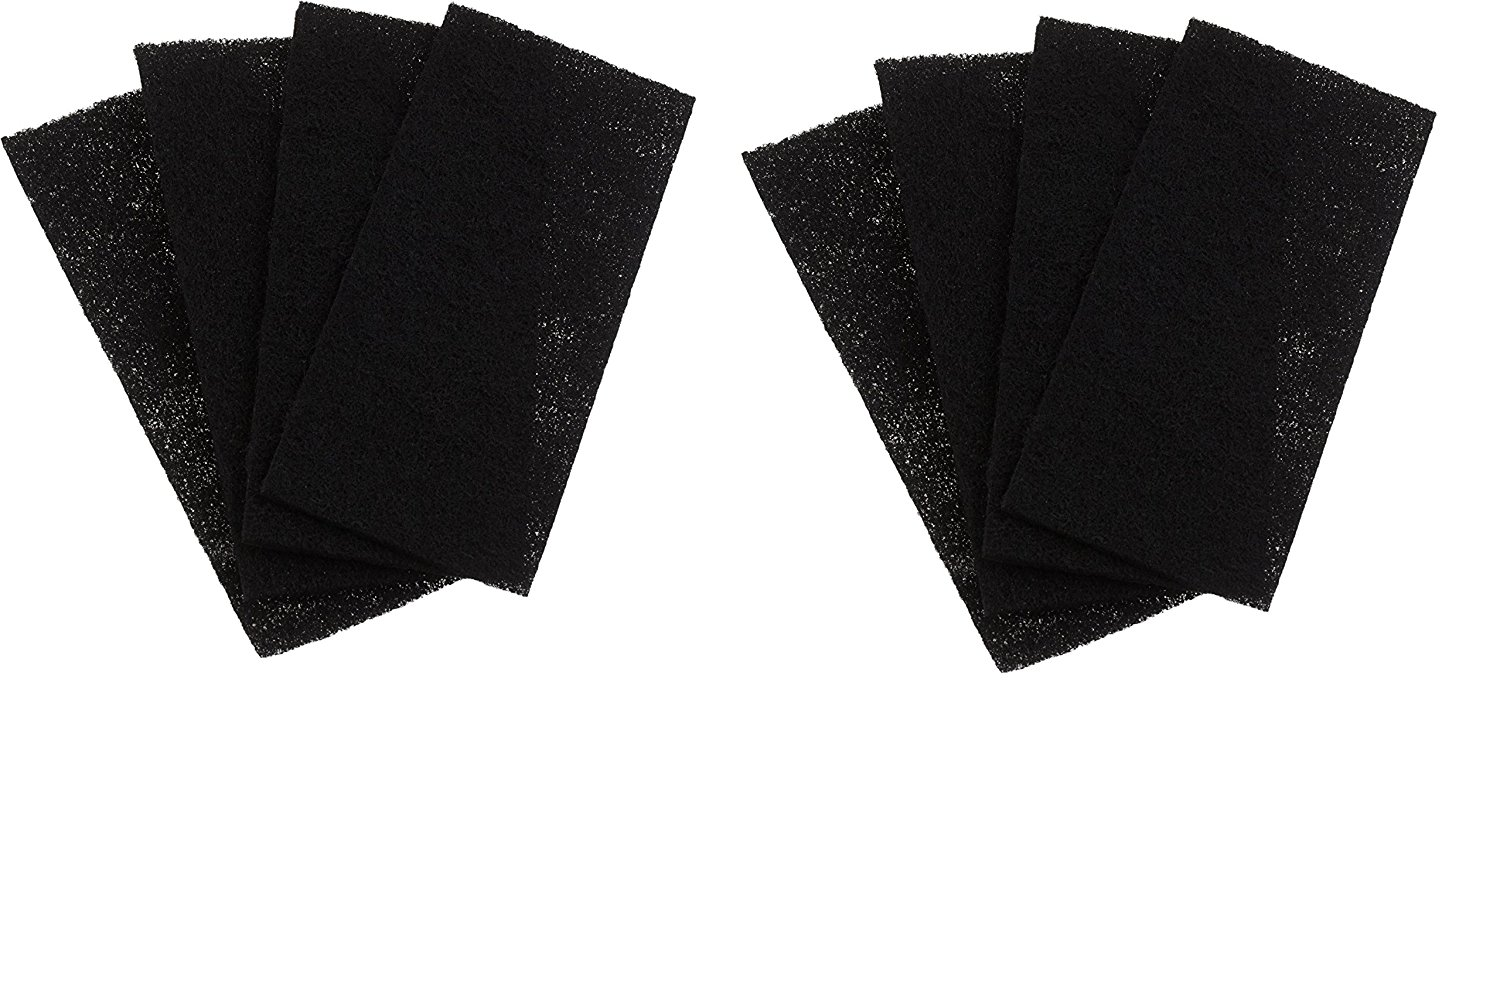 Replacement Holmes Carbon Filters HAPF60, CP-6011 Filter C, 4 Pack (8)